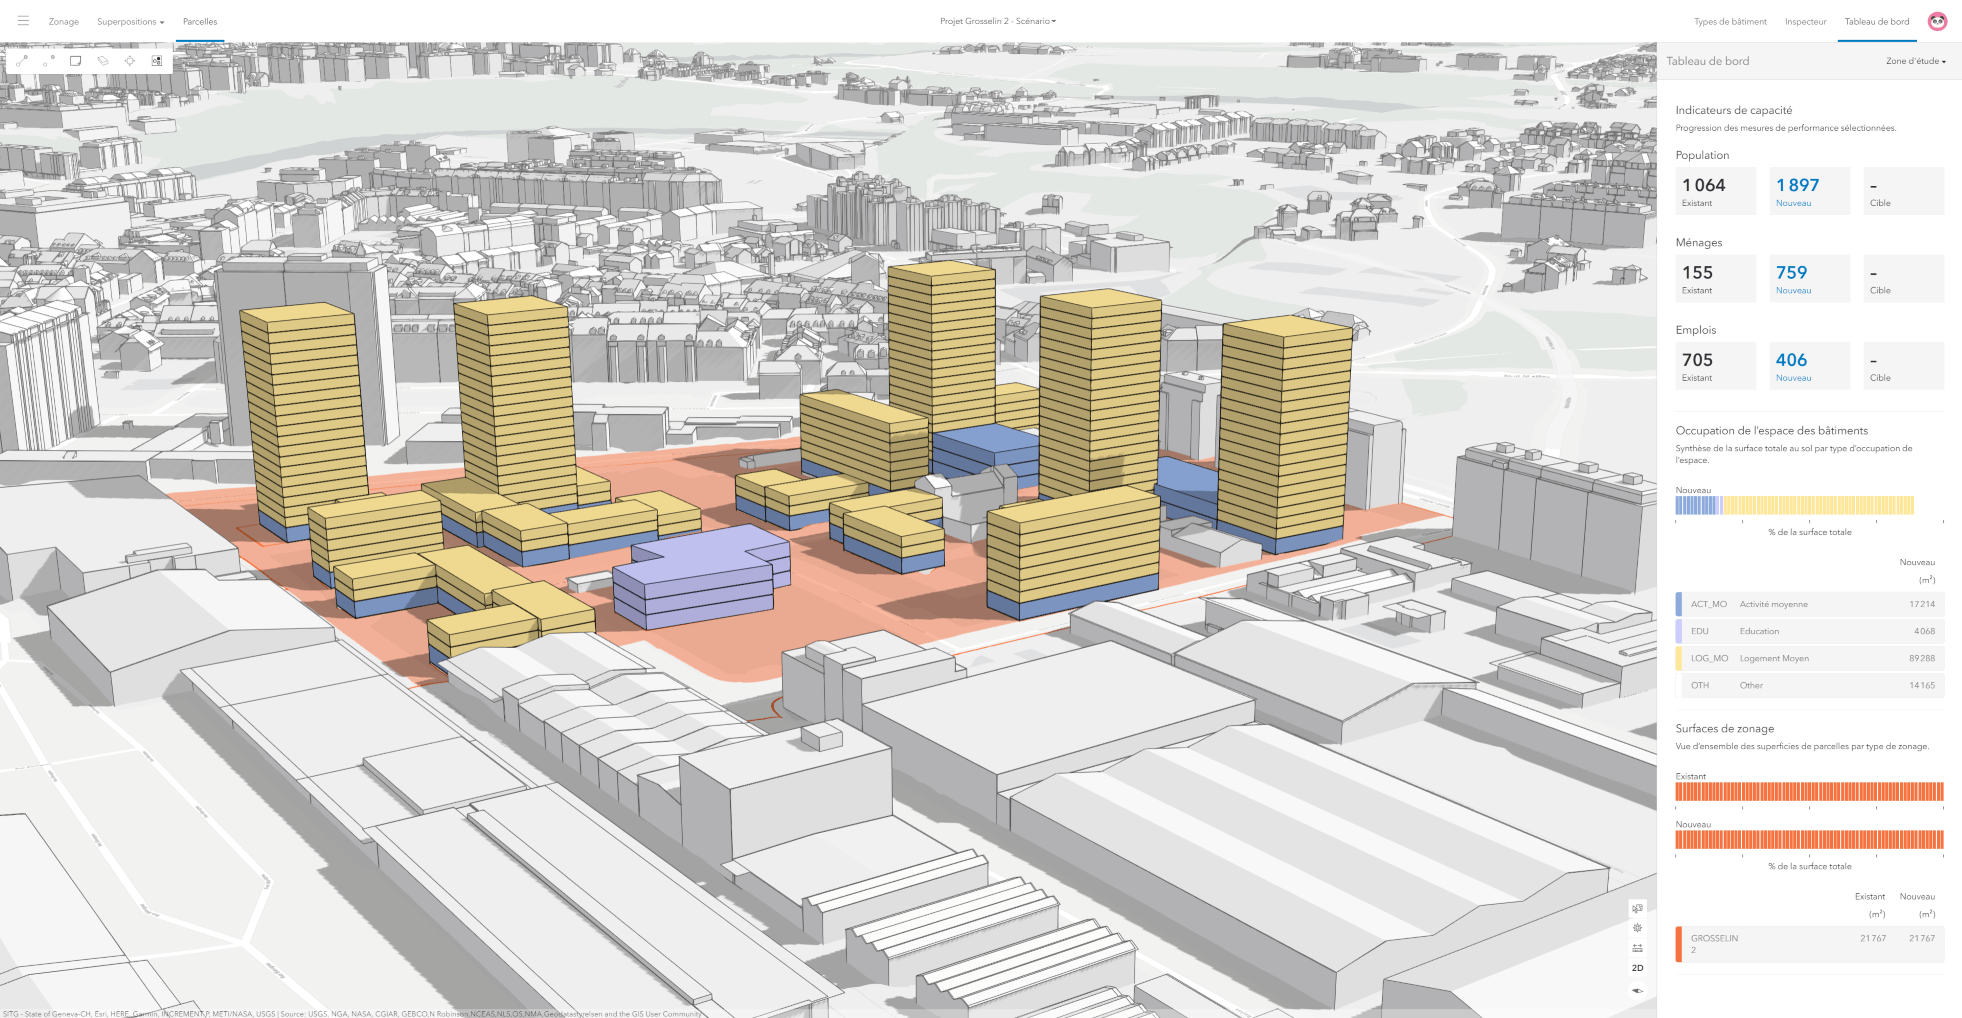 Design scenario of project Grosselin with plausible buildings and capacity indicators.